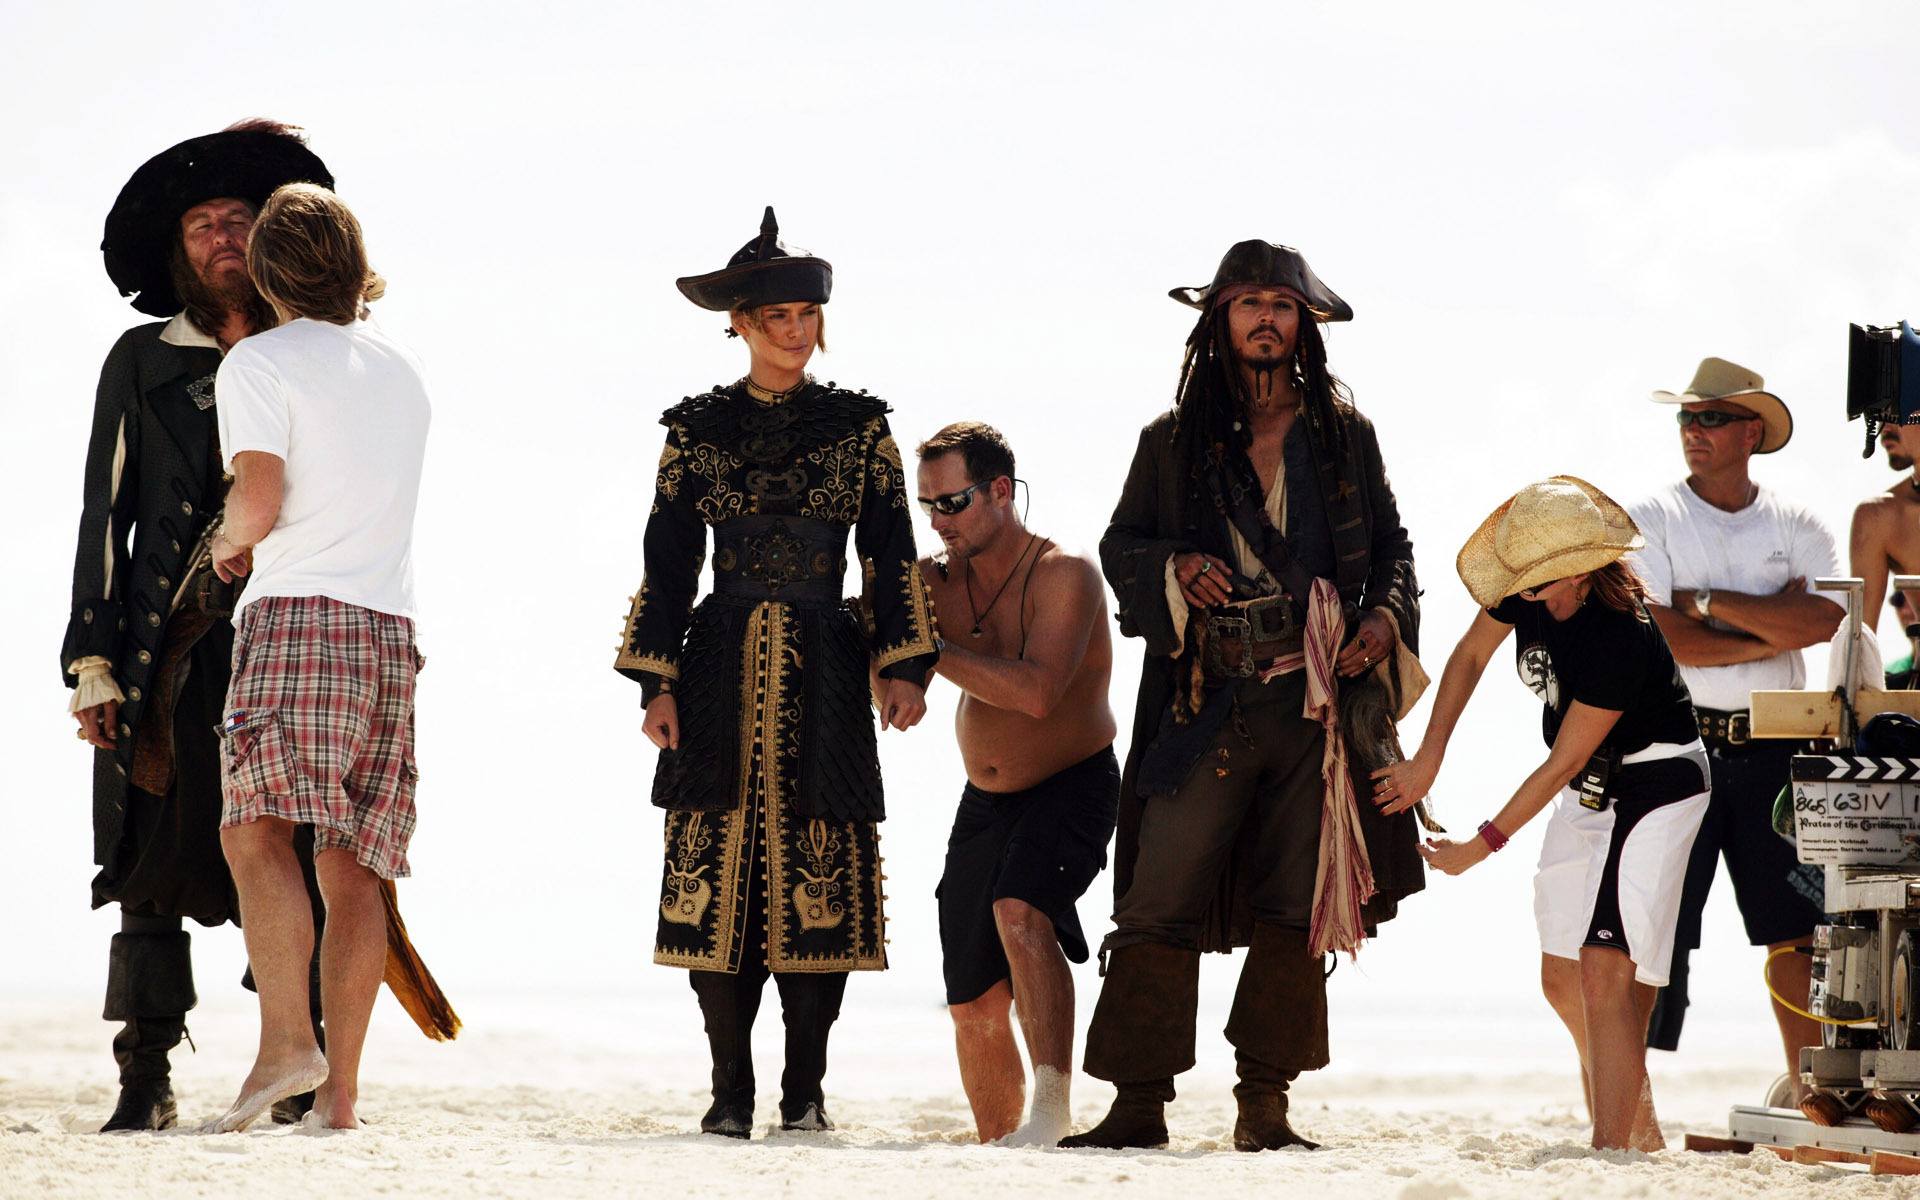 Pirates of the carrbiannudesexwallpaperphotopictures hentia videos